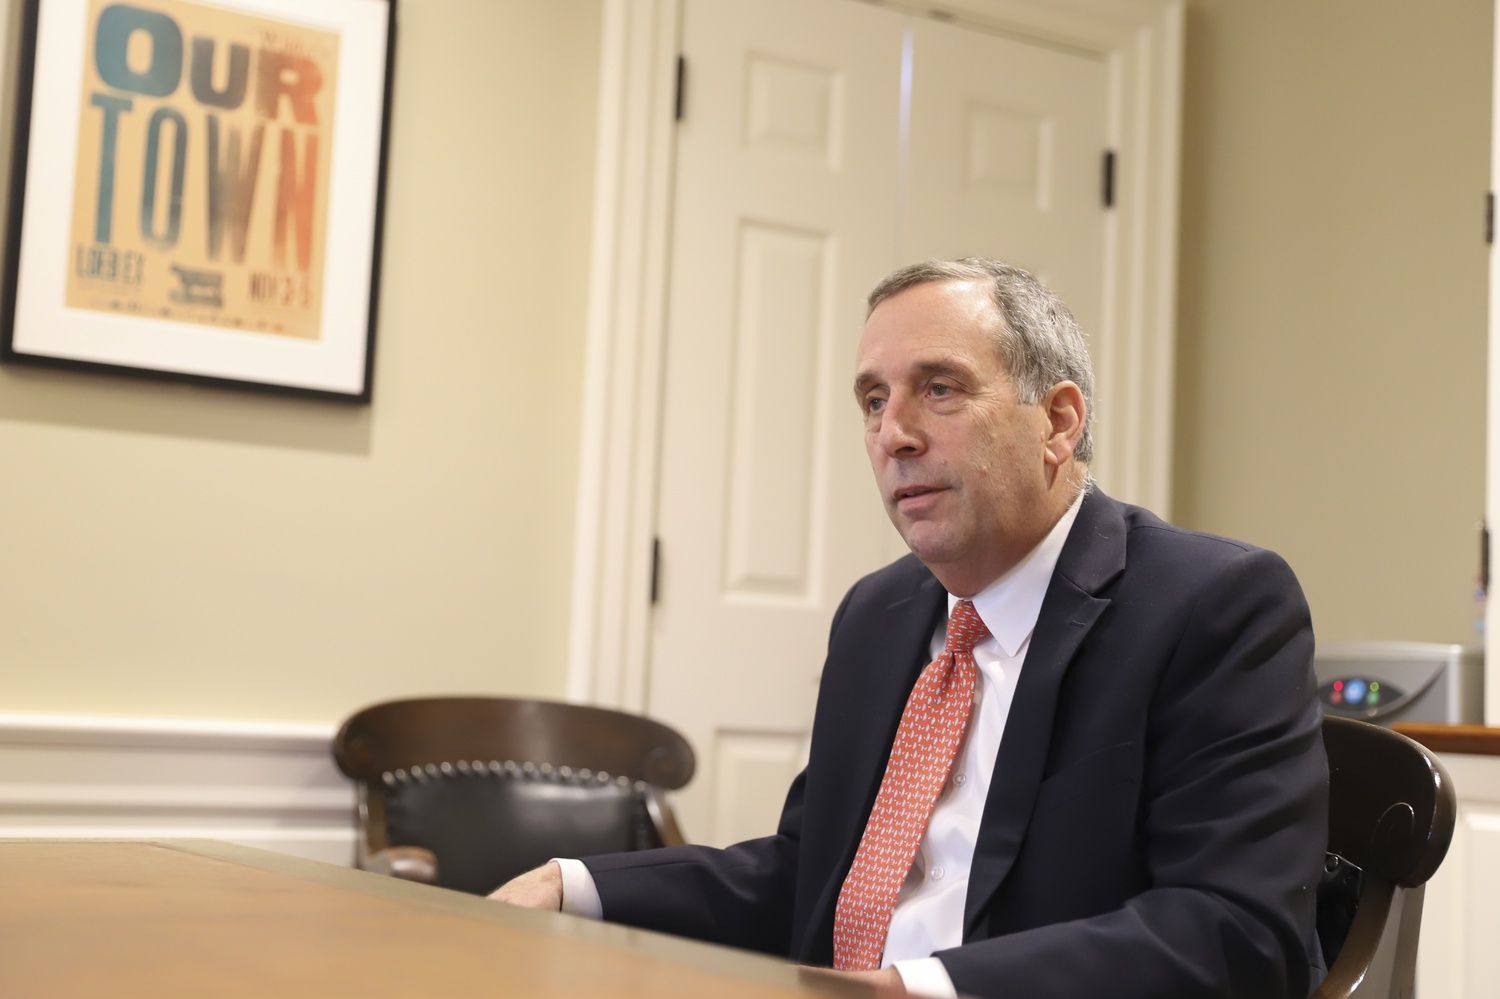 University President Lawrence S. Bacow in his office in early October.